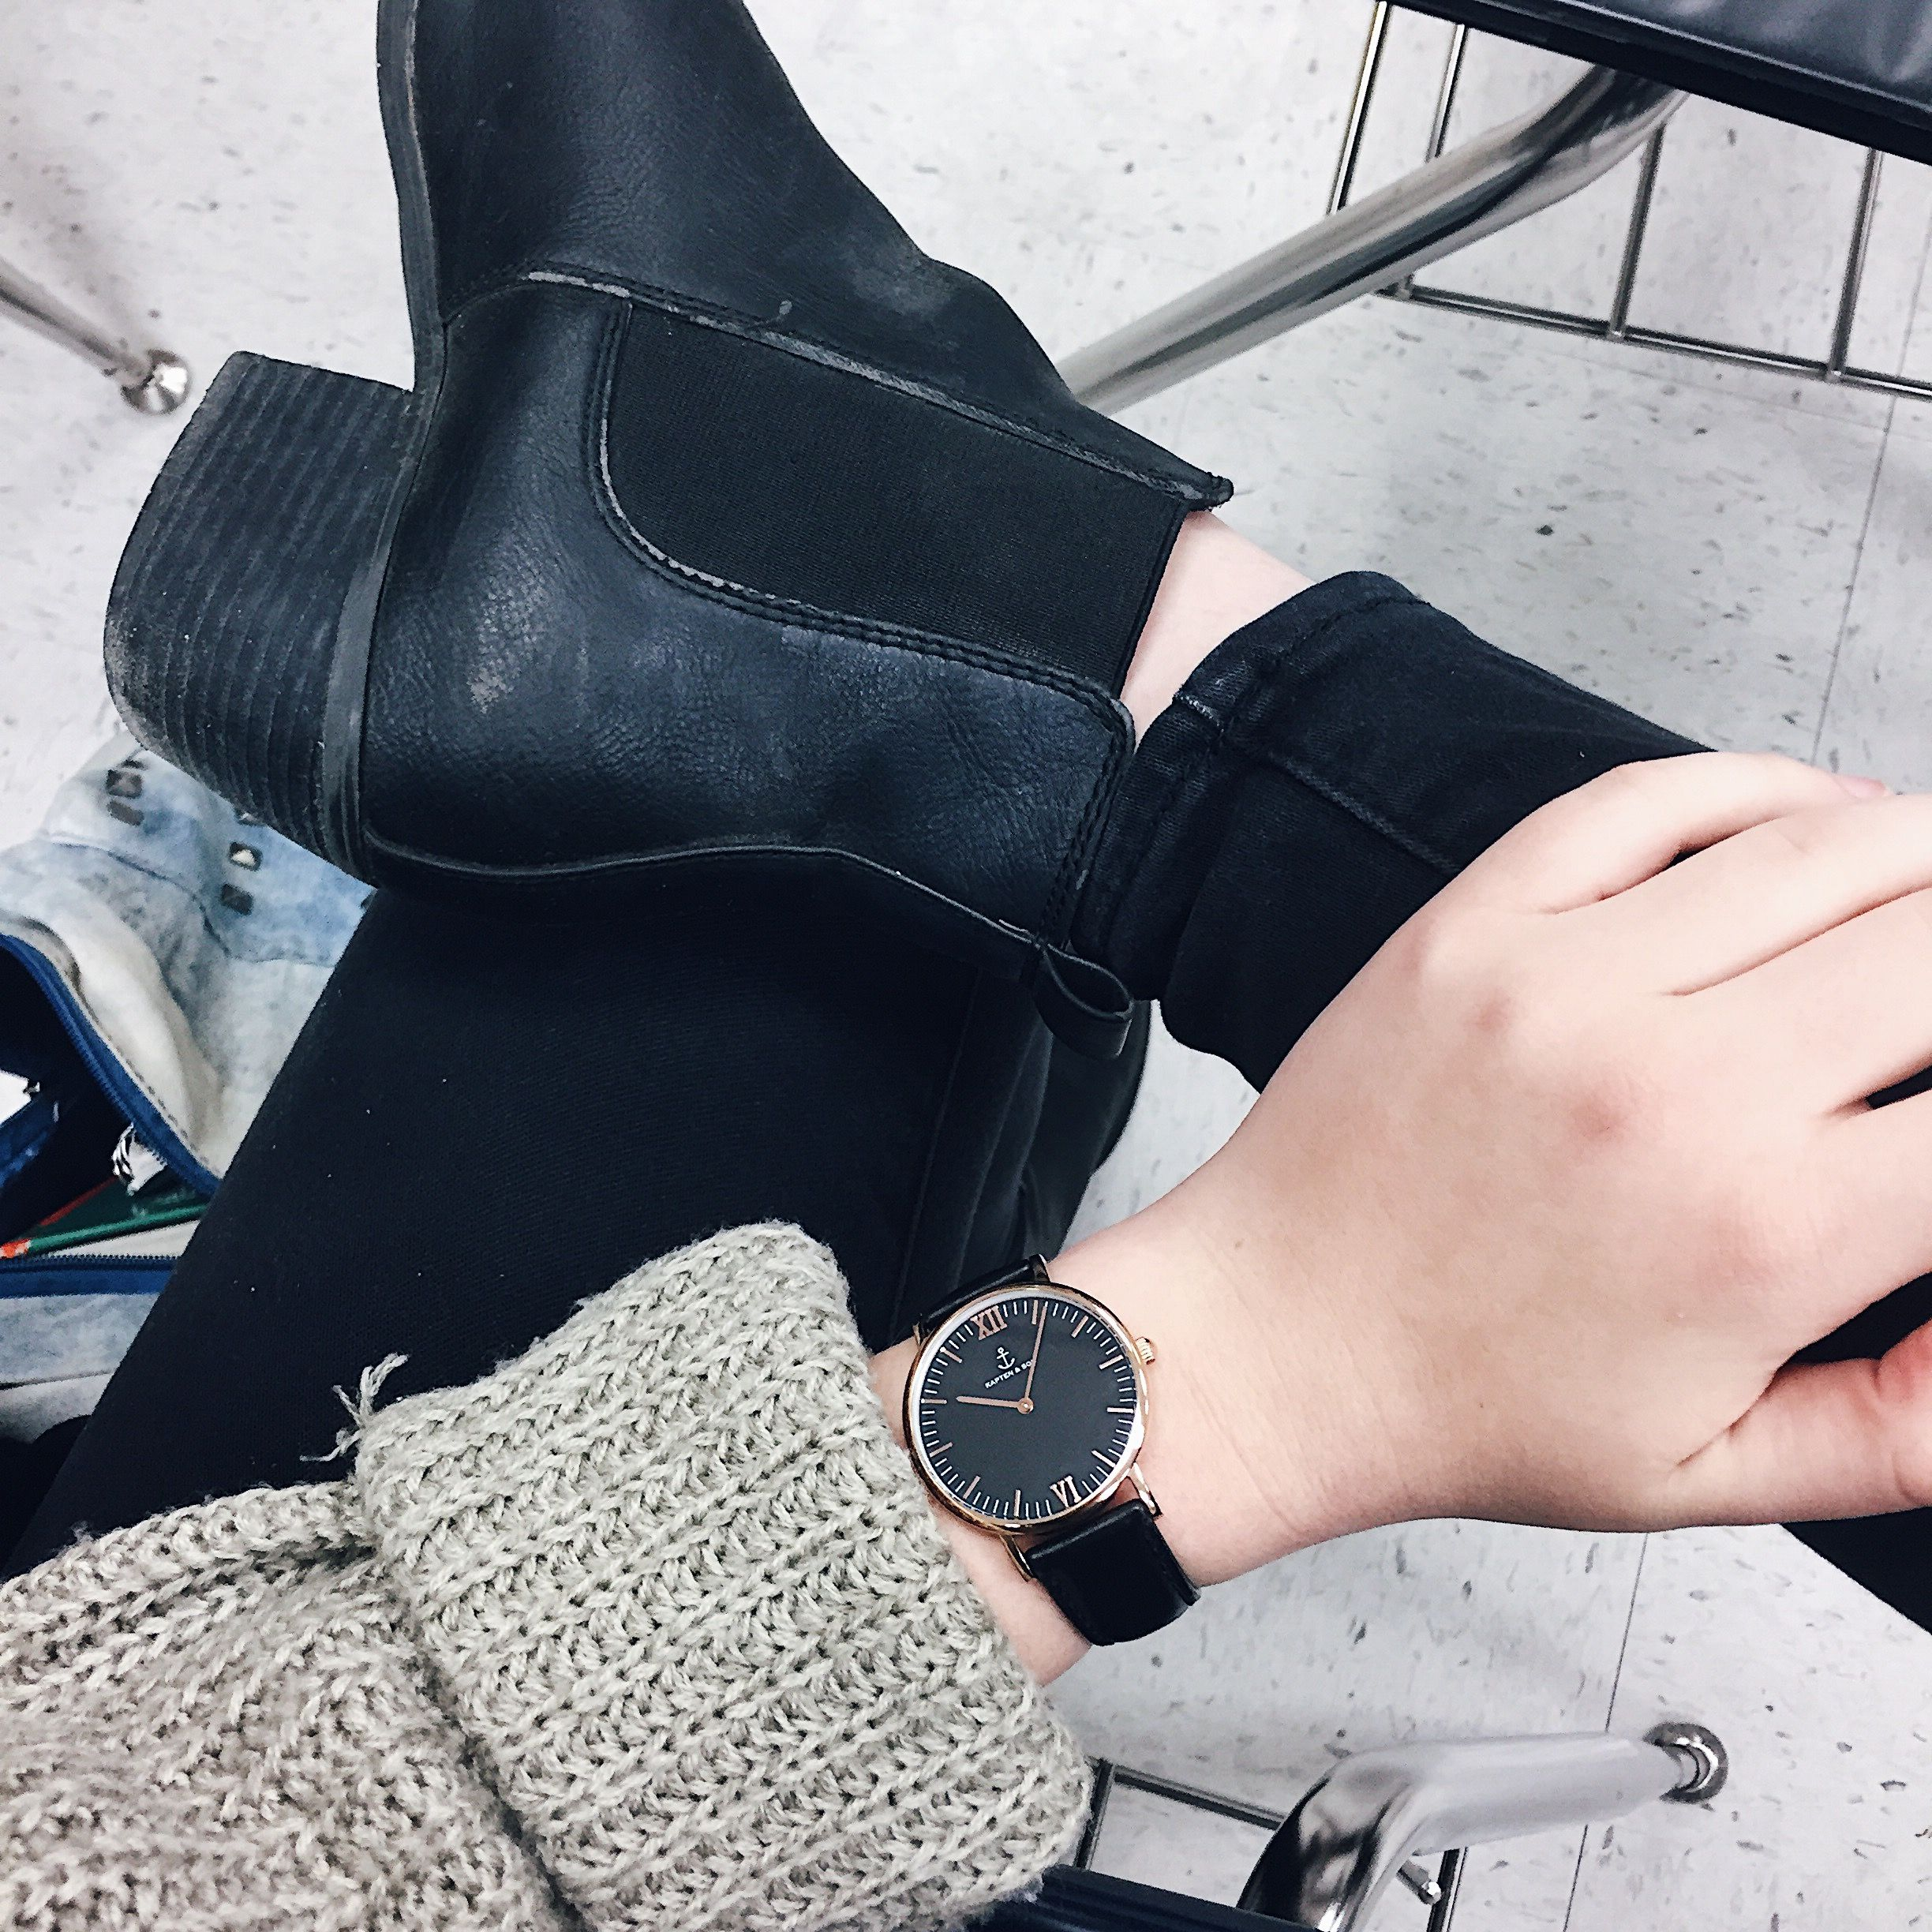 shop watches inspired by this look at http://kapten-son.com